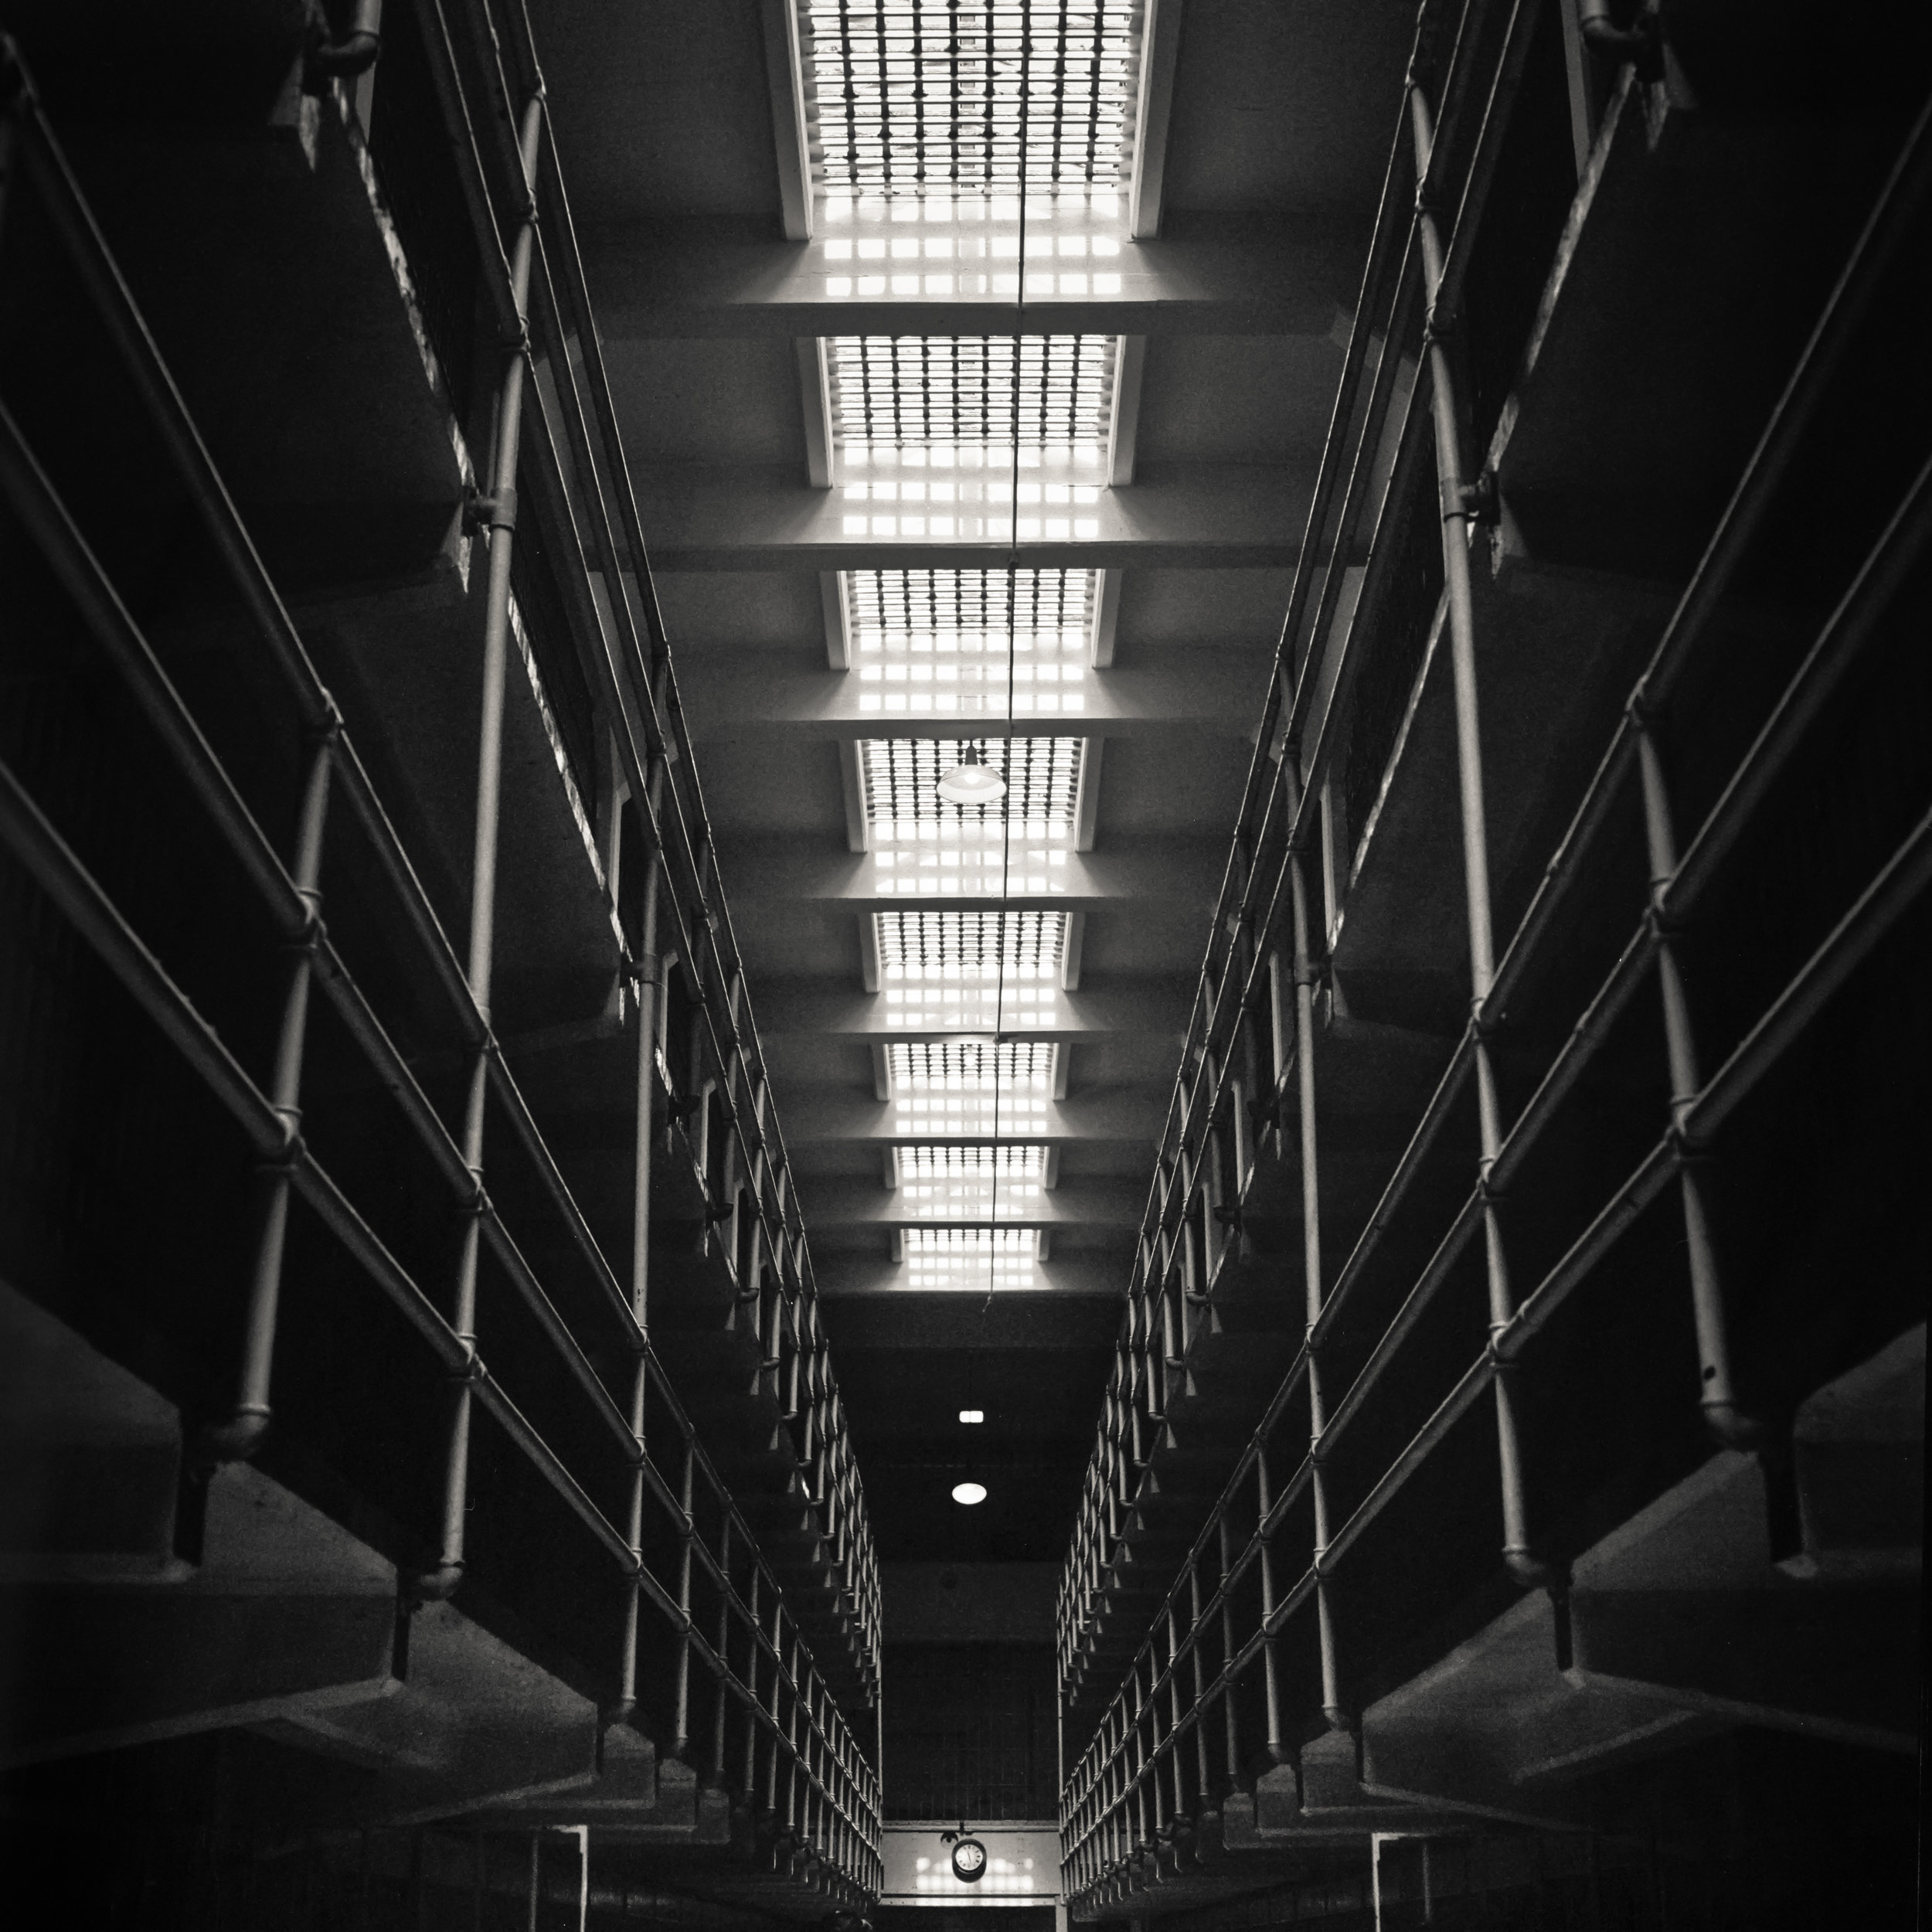 Alcatraz black white jail cell corridor dark ominous haunted